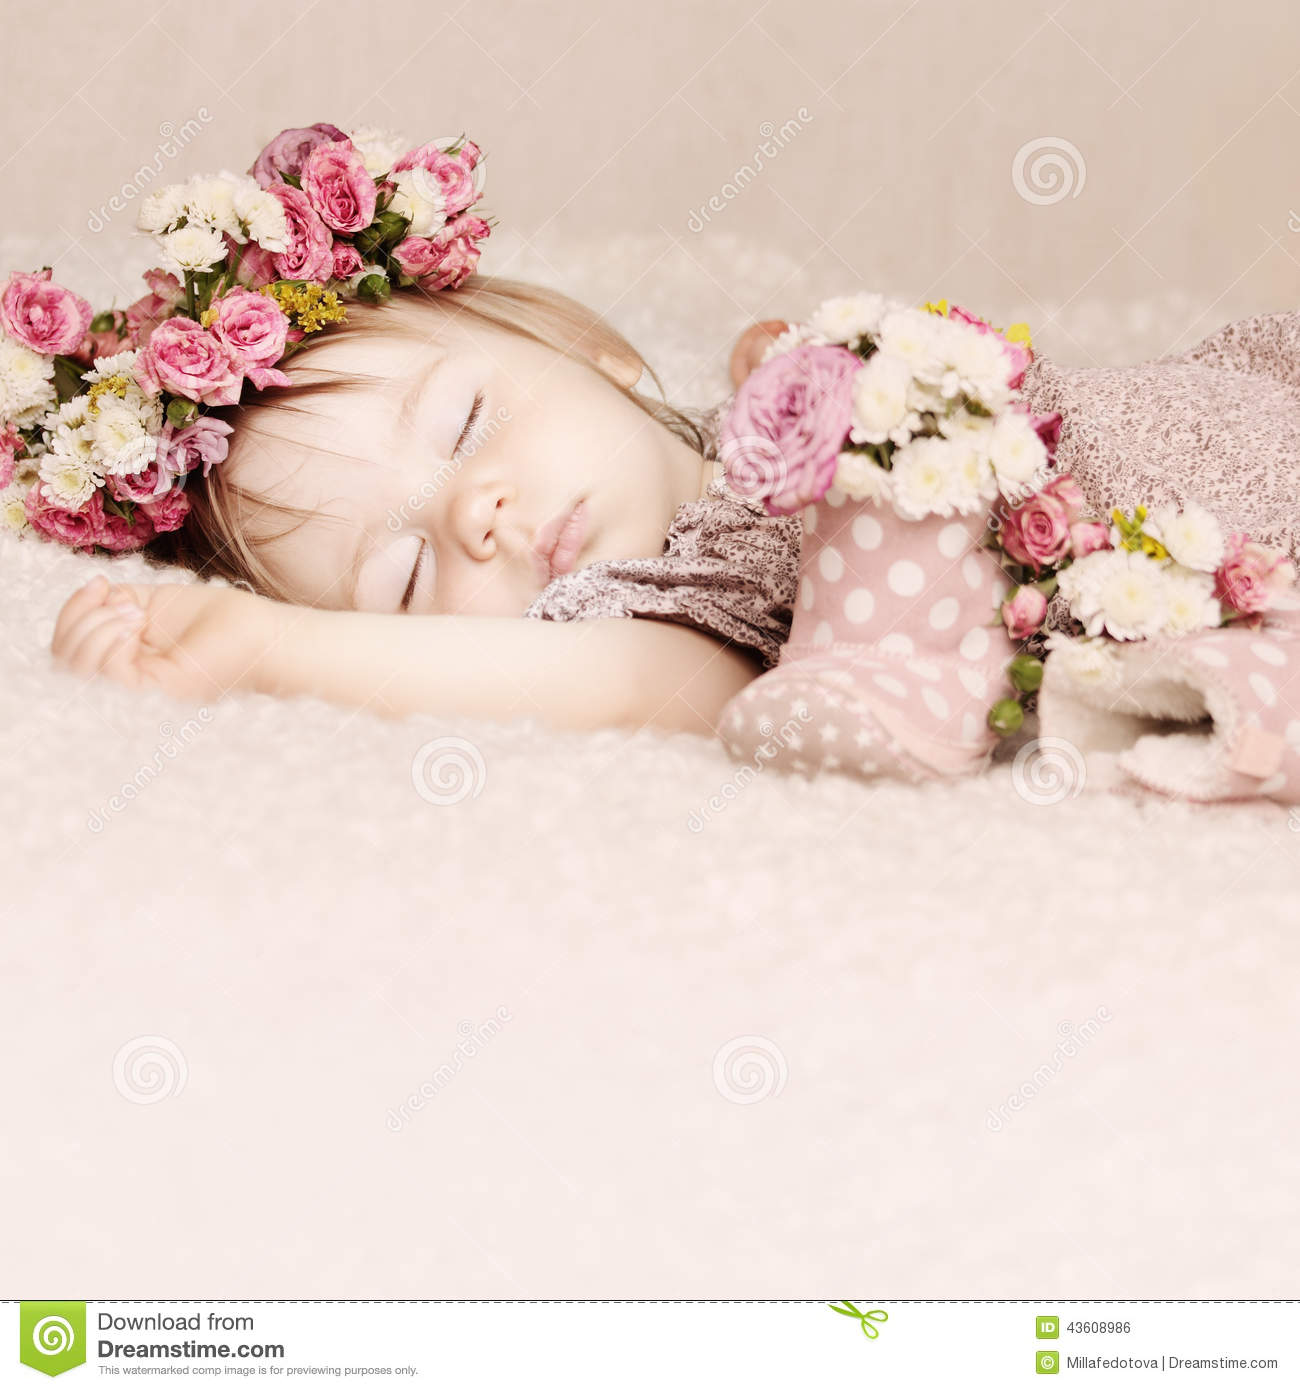 Cute Baby Girl Sleep With Flowers Vintage Stock Photo Image Of